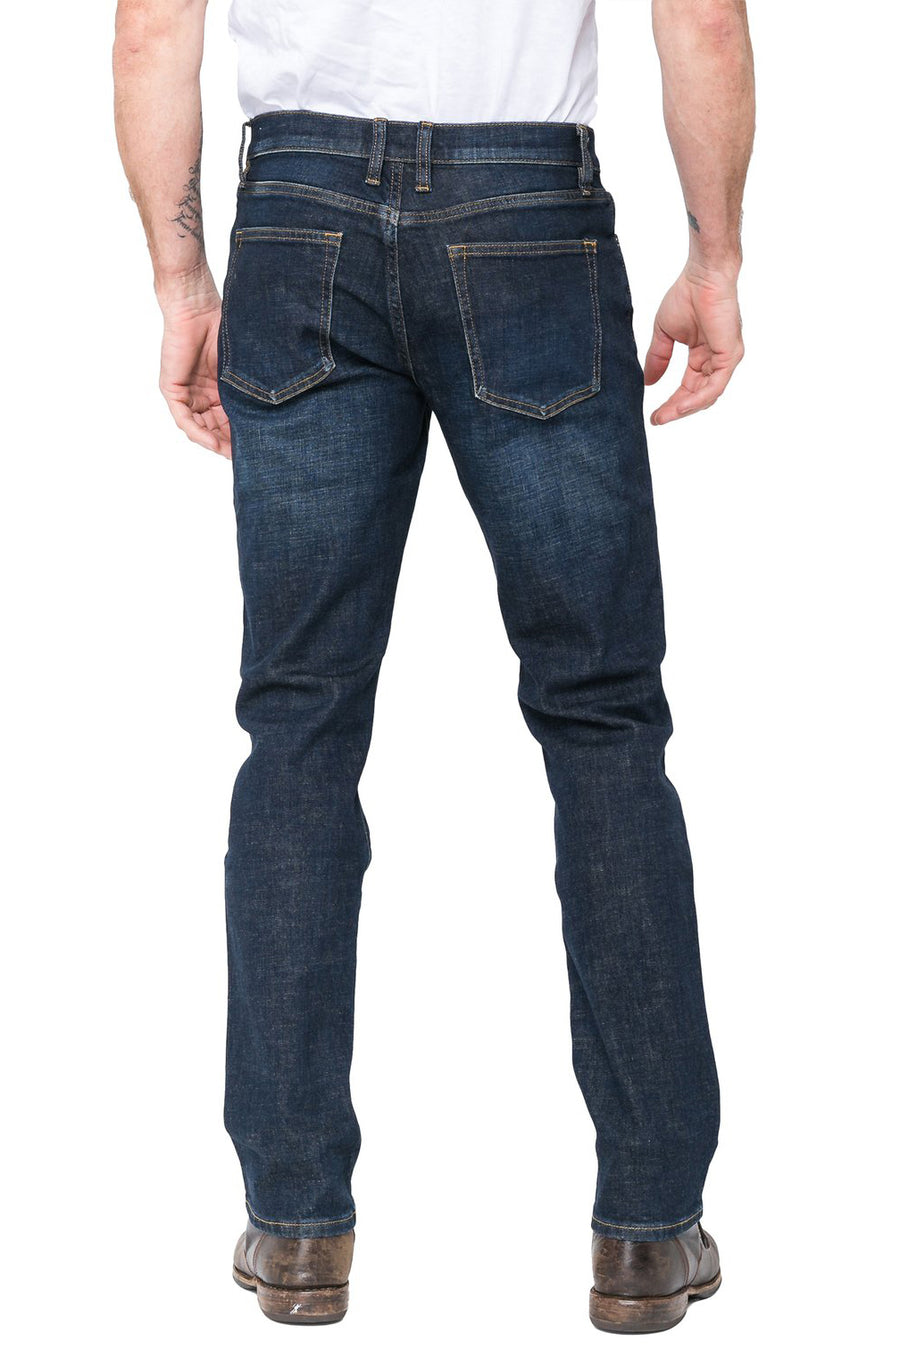 Roxbury Slim - 6 Month Deep Blue Worn